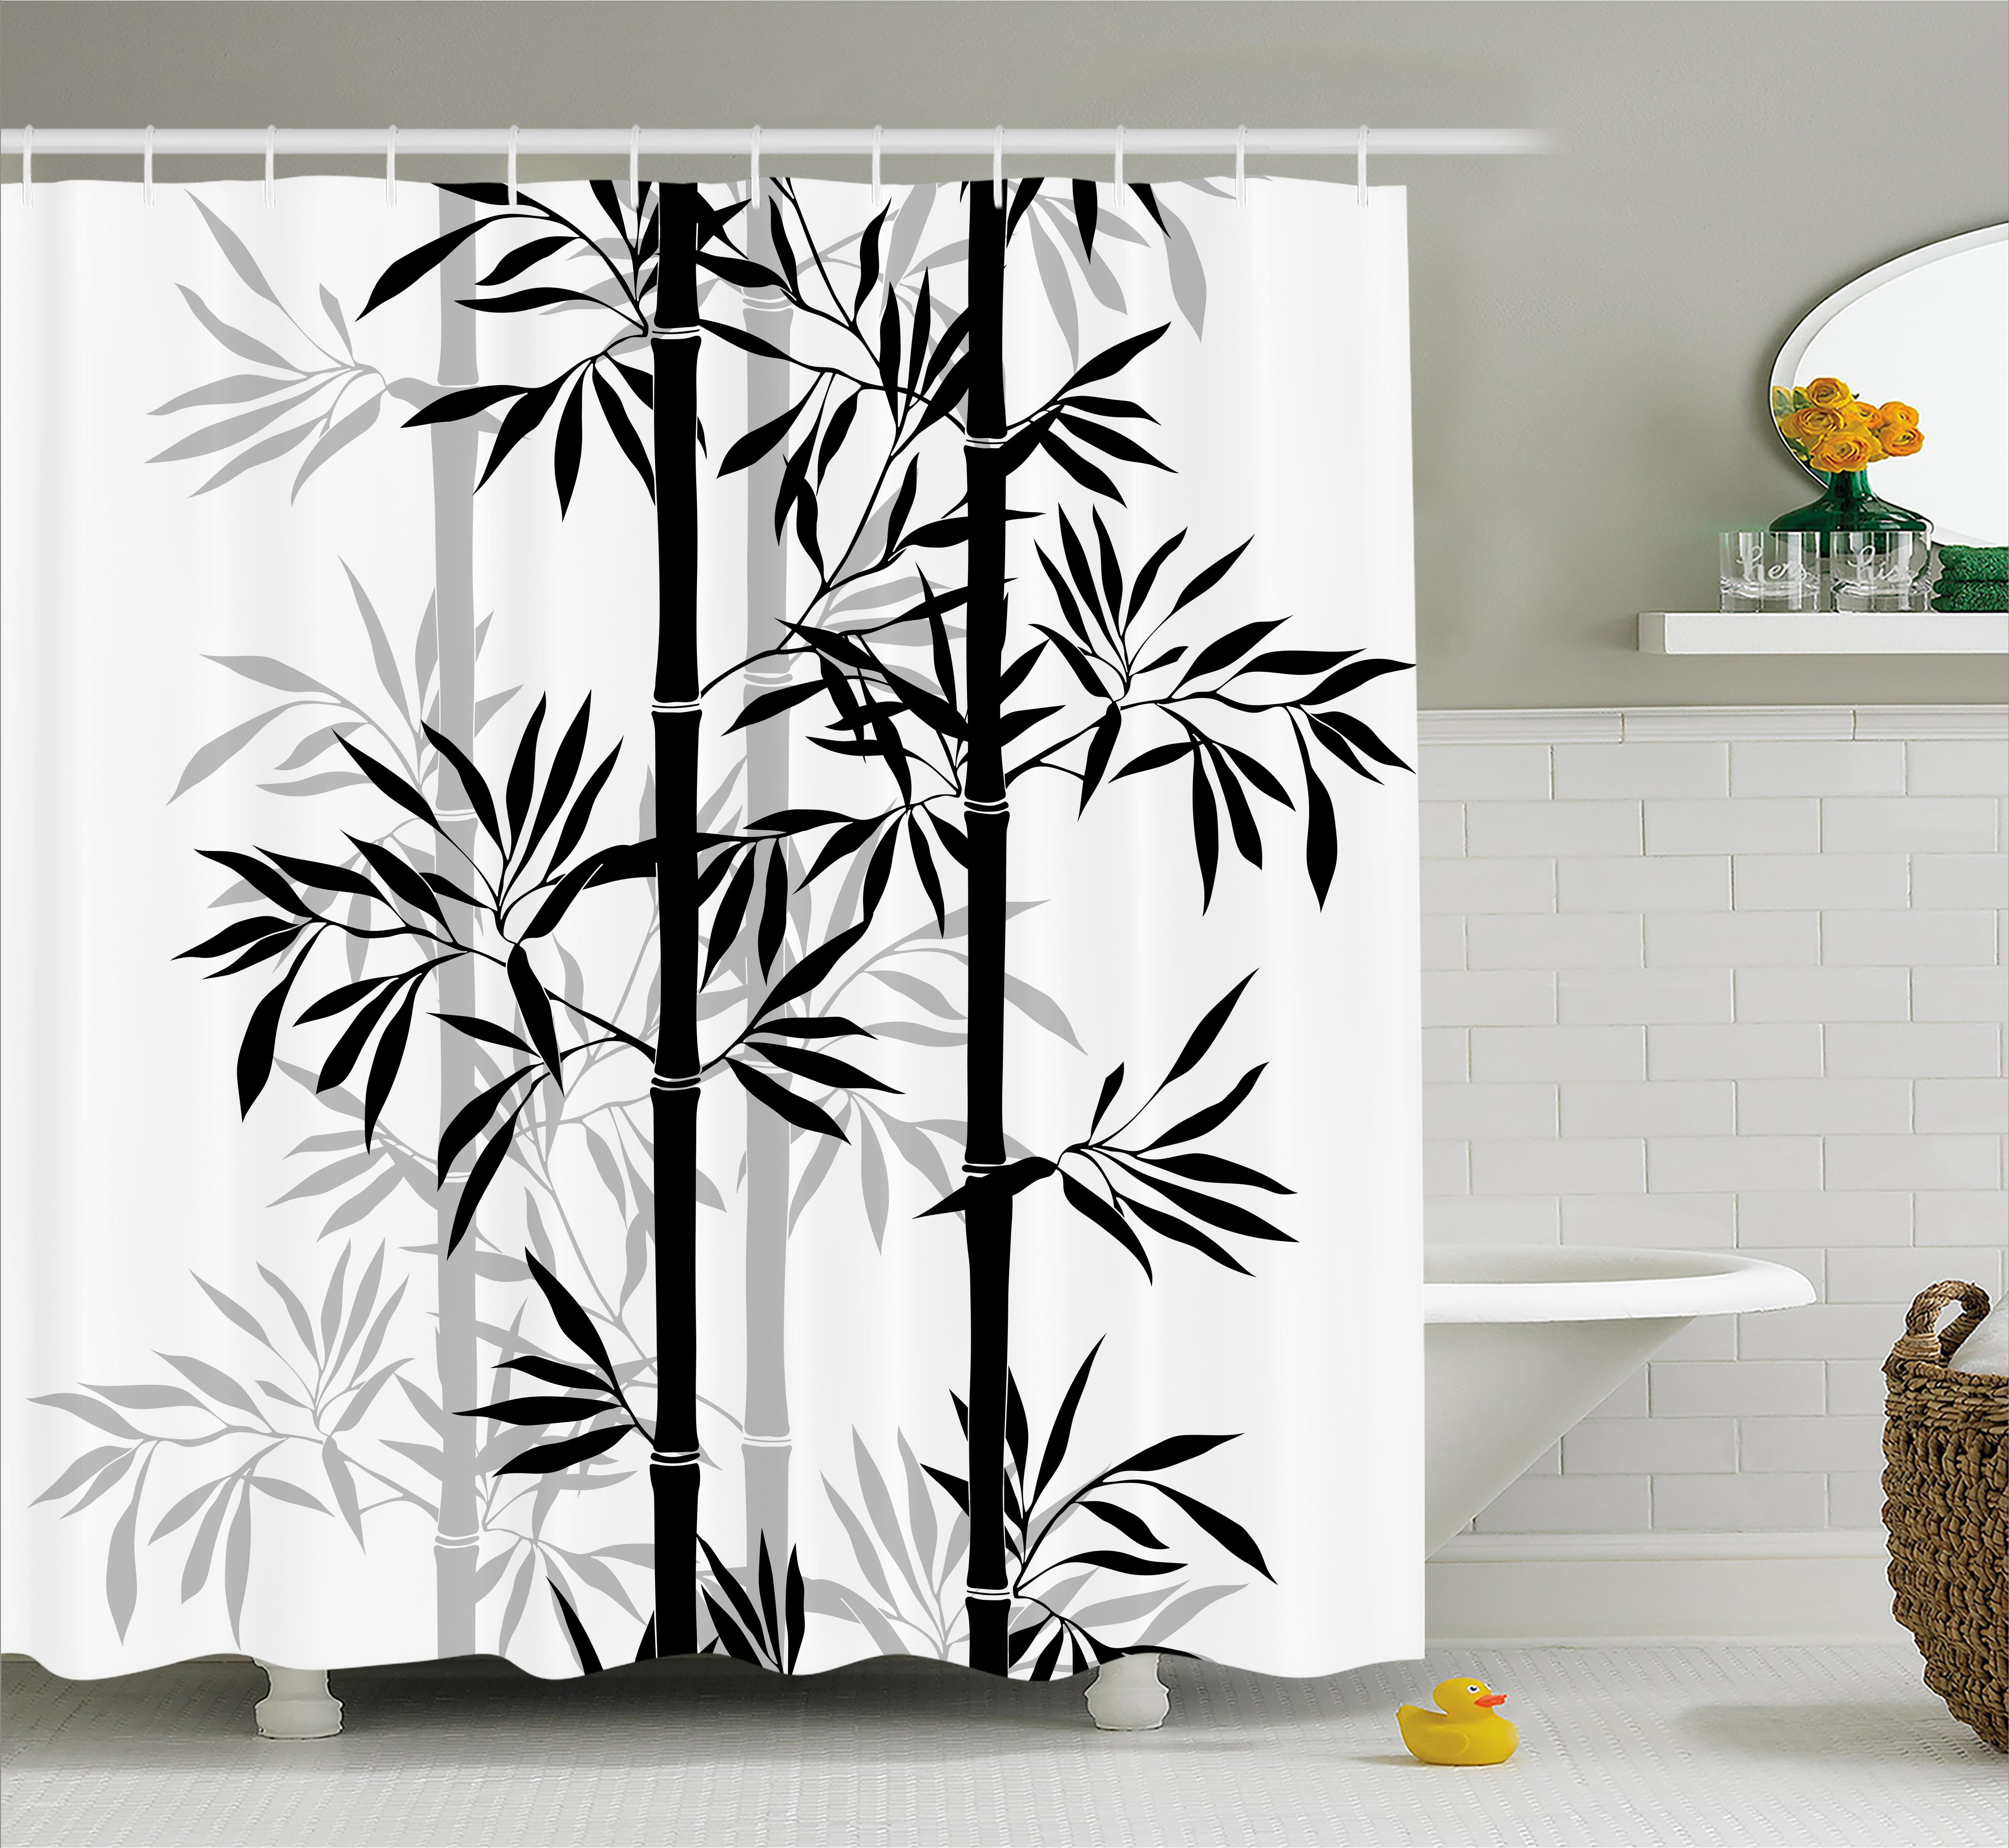 Tree Of Life Shower Curtain Silhouette Spiritual Bamboo Leaves Japanese Zen Feng Shui Boho Image Fabric Bathroom Set With Hooks Black White